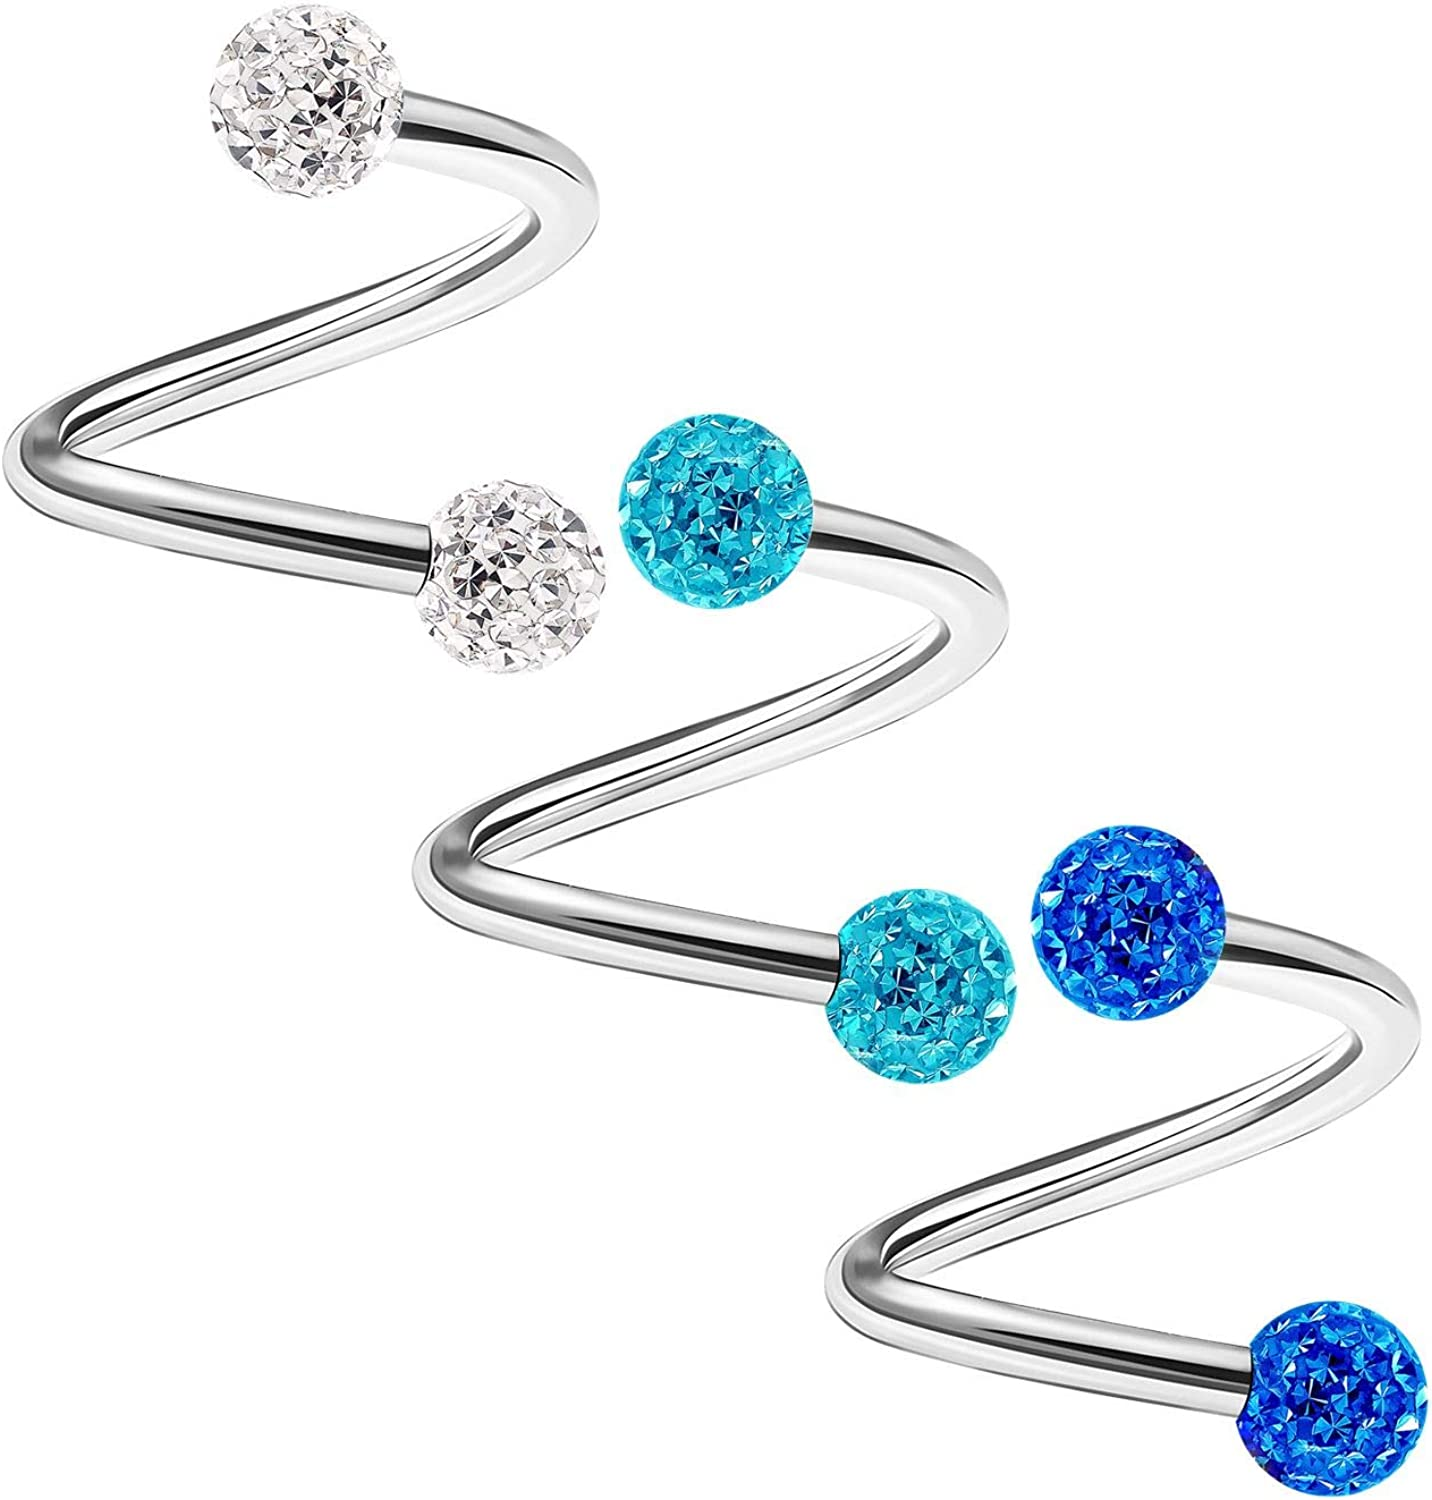 3PCS Stainless Max 83% OFF Steel Spiral Barbell Max 43% OFF 16 Sn Crystal Ball 3mm Gauge